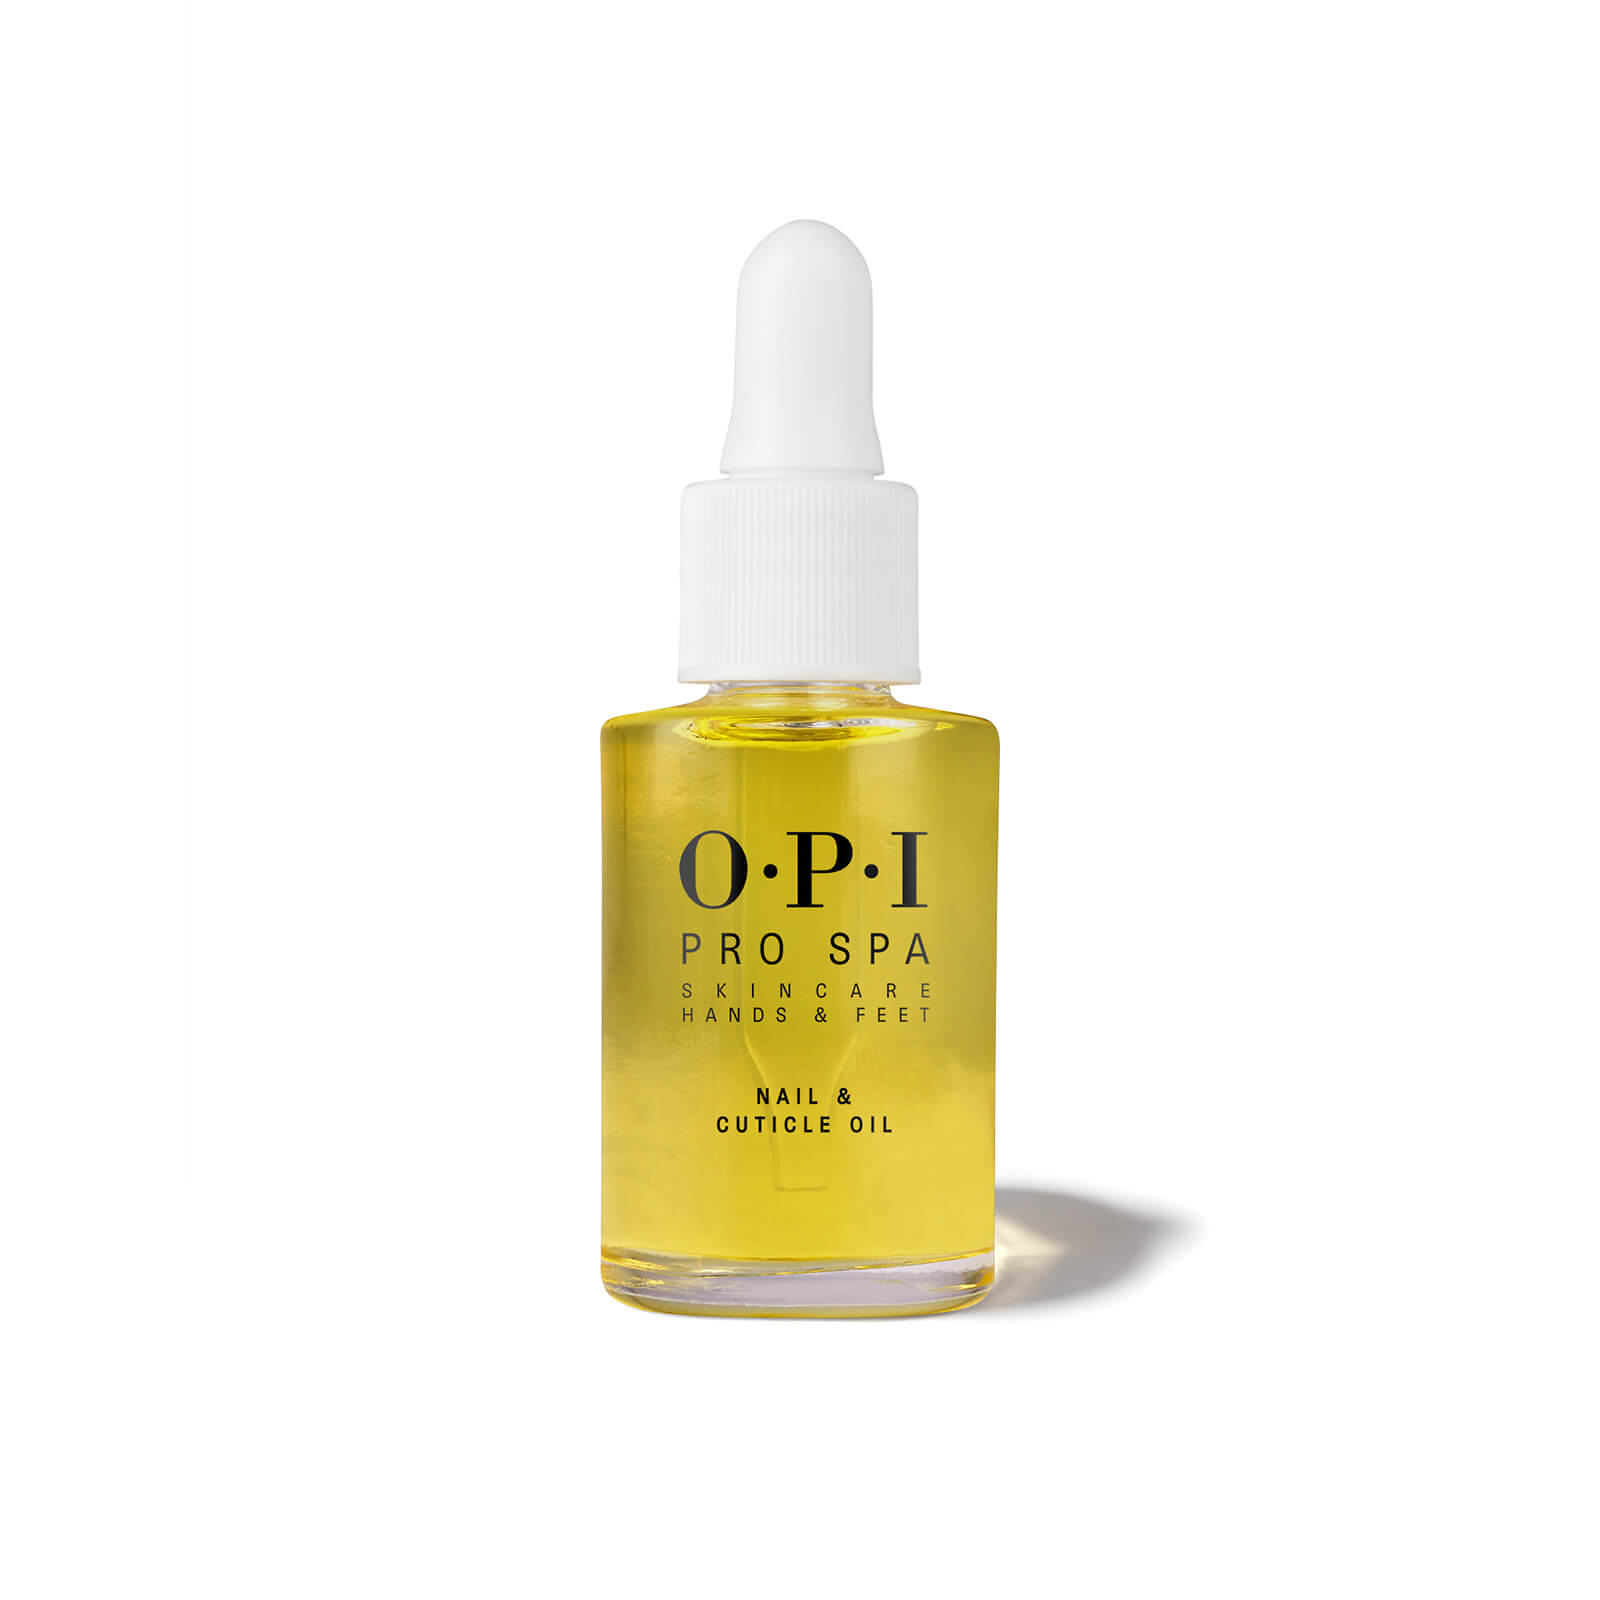 OPI Prospa Nail and Cuticle Oil (Various Sizes) - 28ml